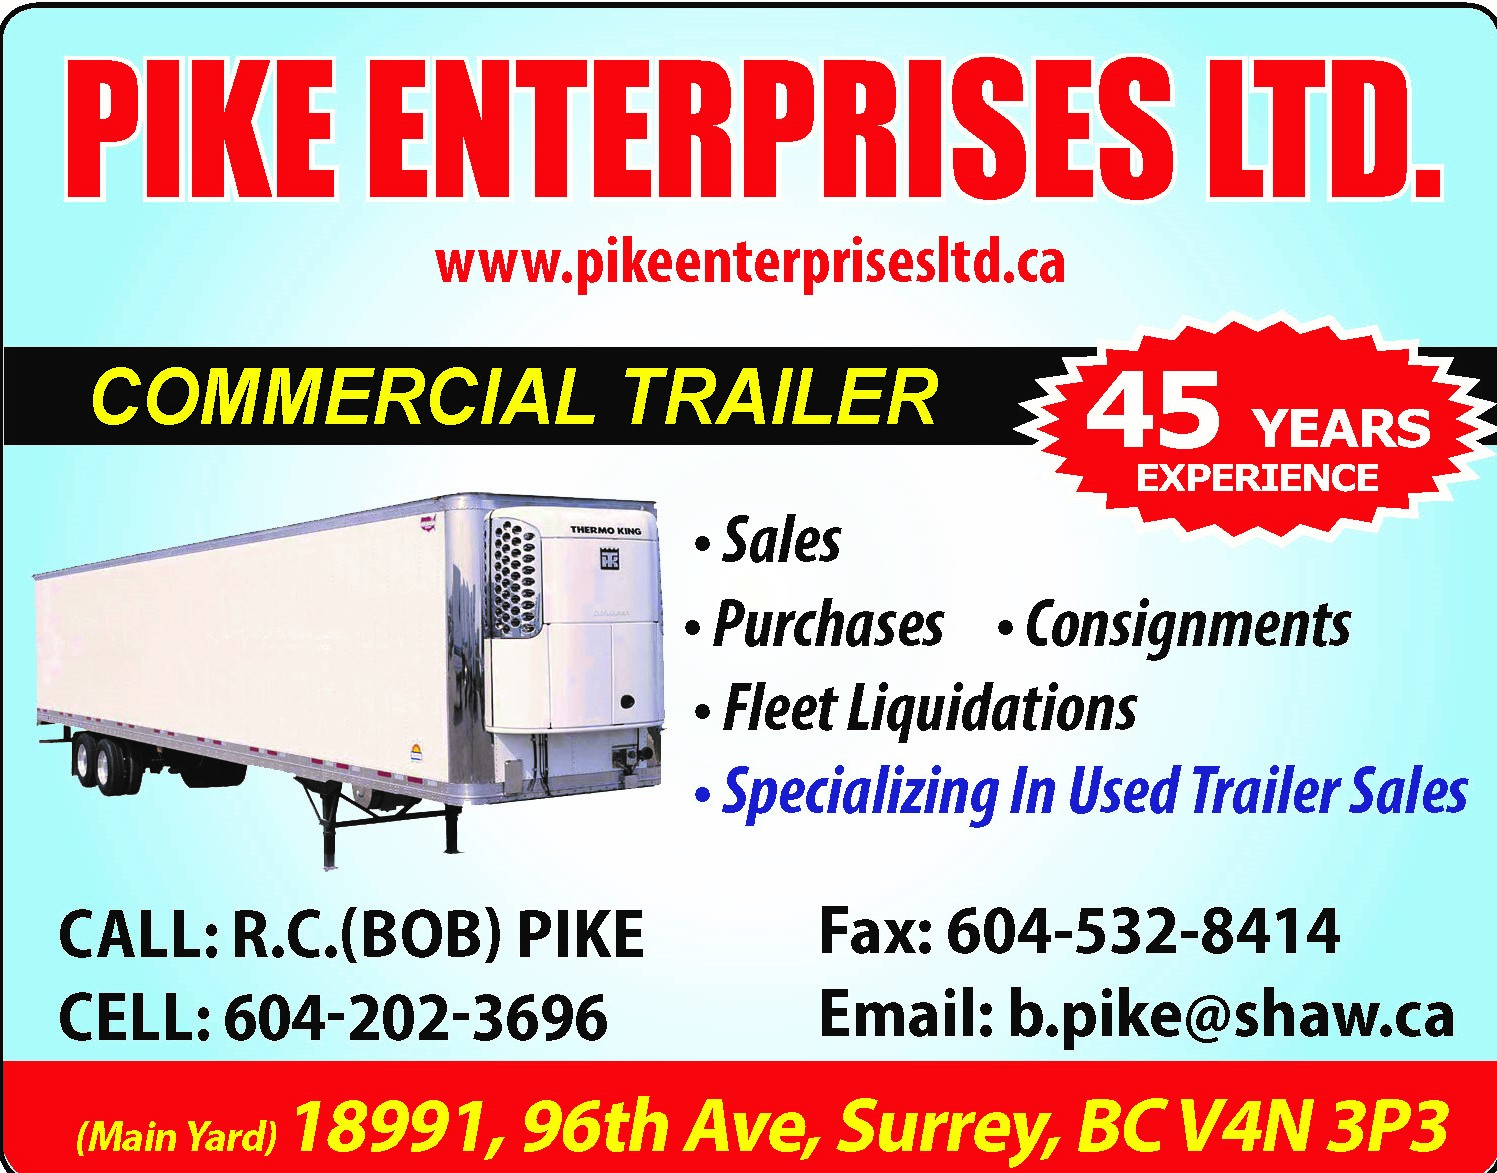 pike-enterprises-ltd-5wvL85g.jpeg